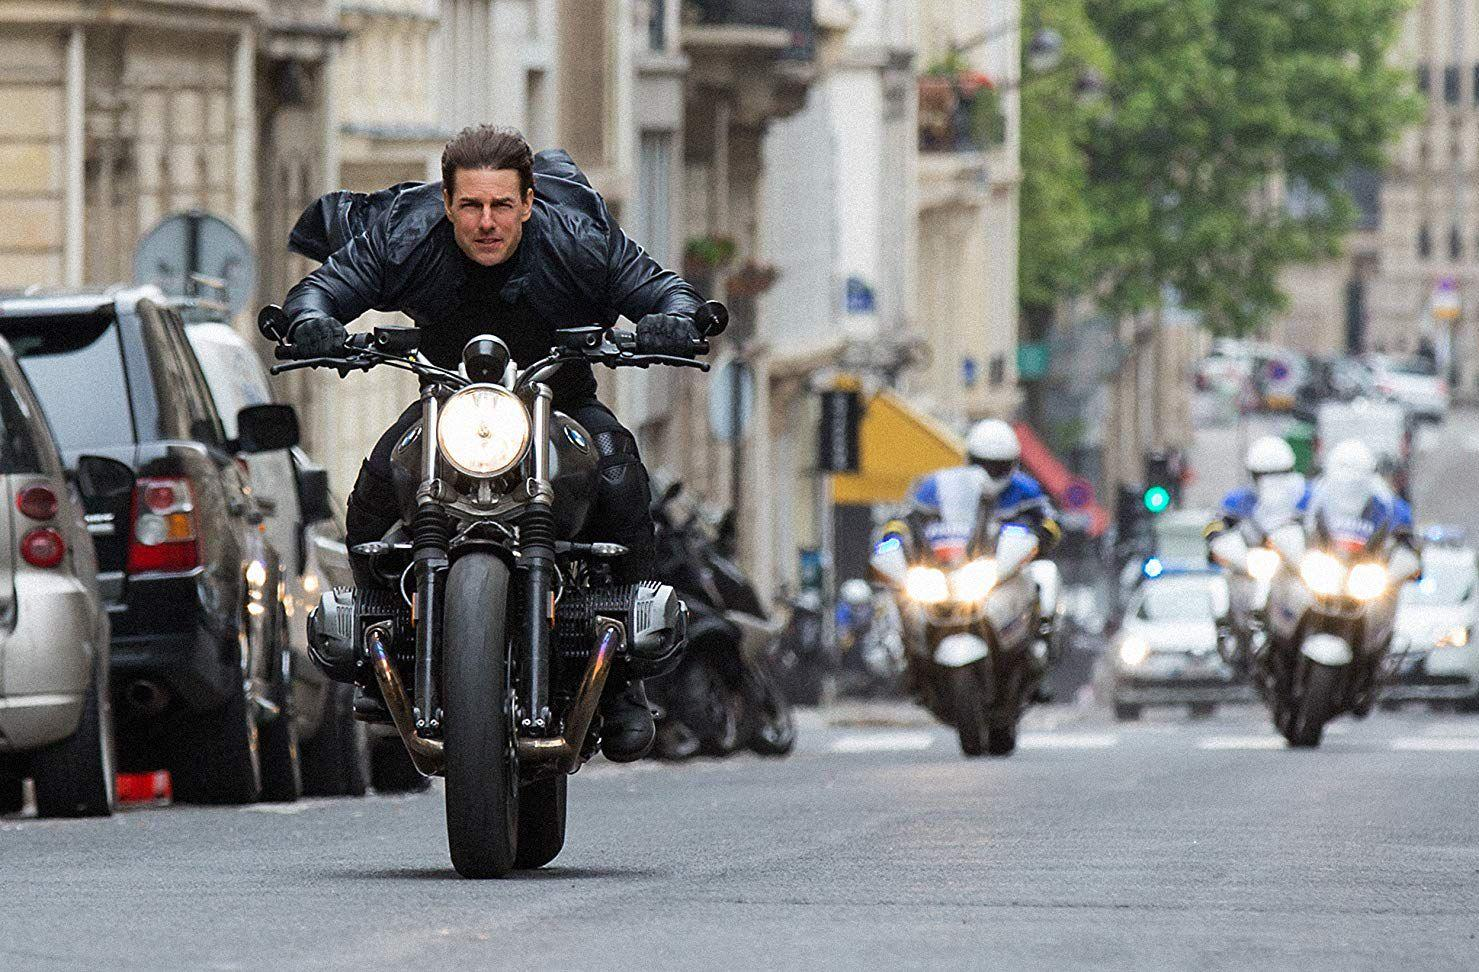 """Mission: Impossible - Fallout"" brings impressive action without much substance"